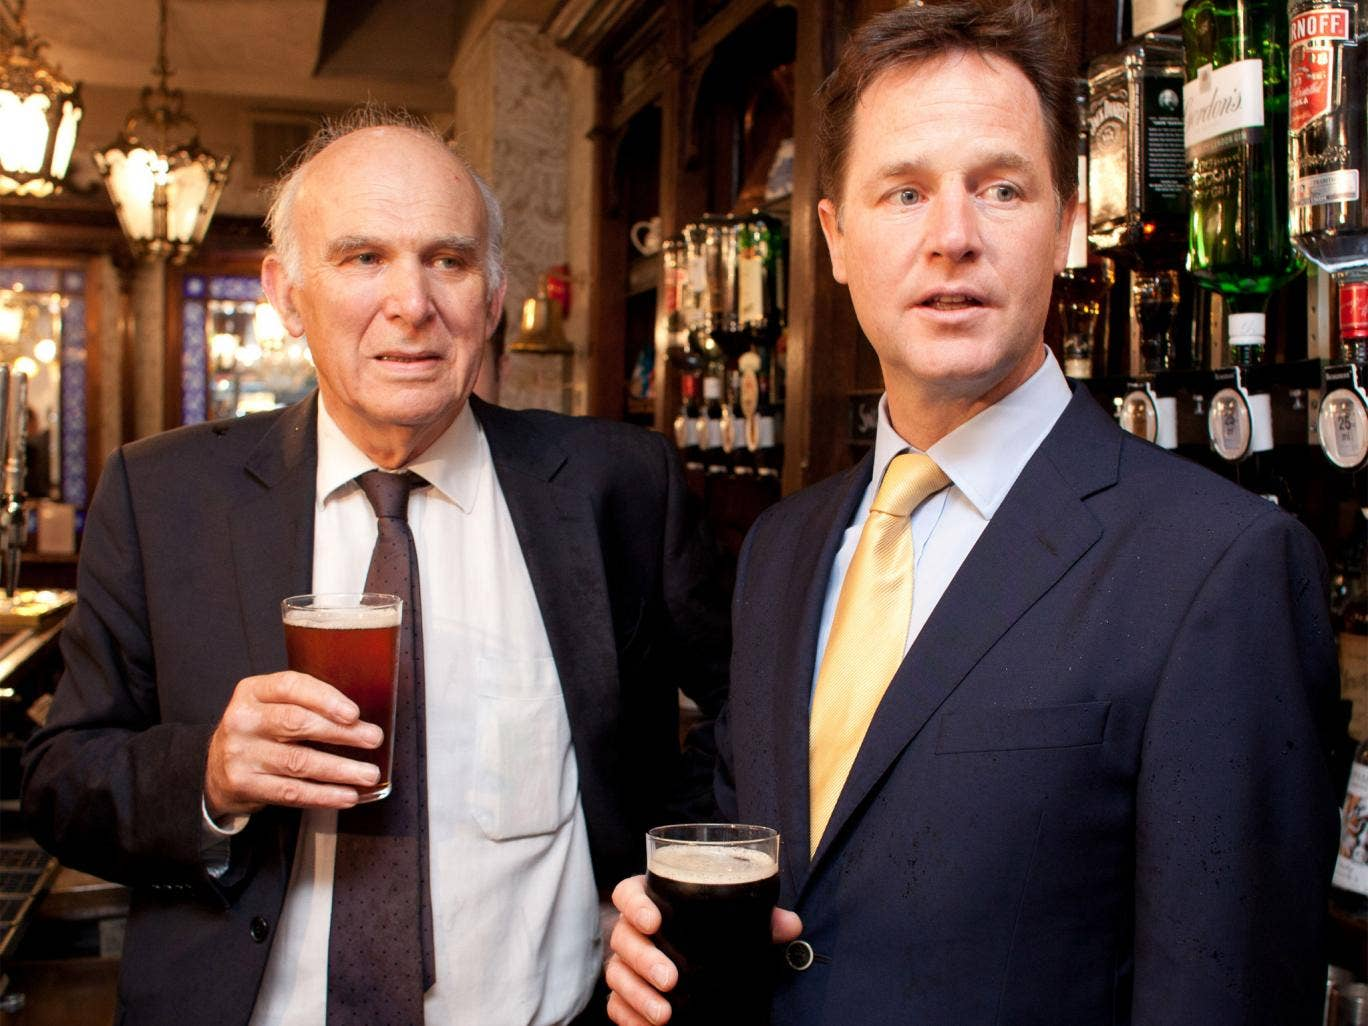 Vince Cable and Nick Clegg at the Queens Head Pub